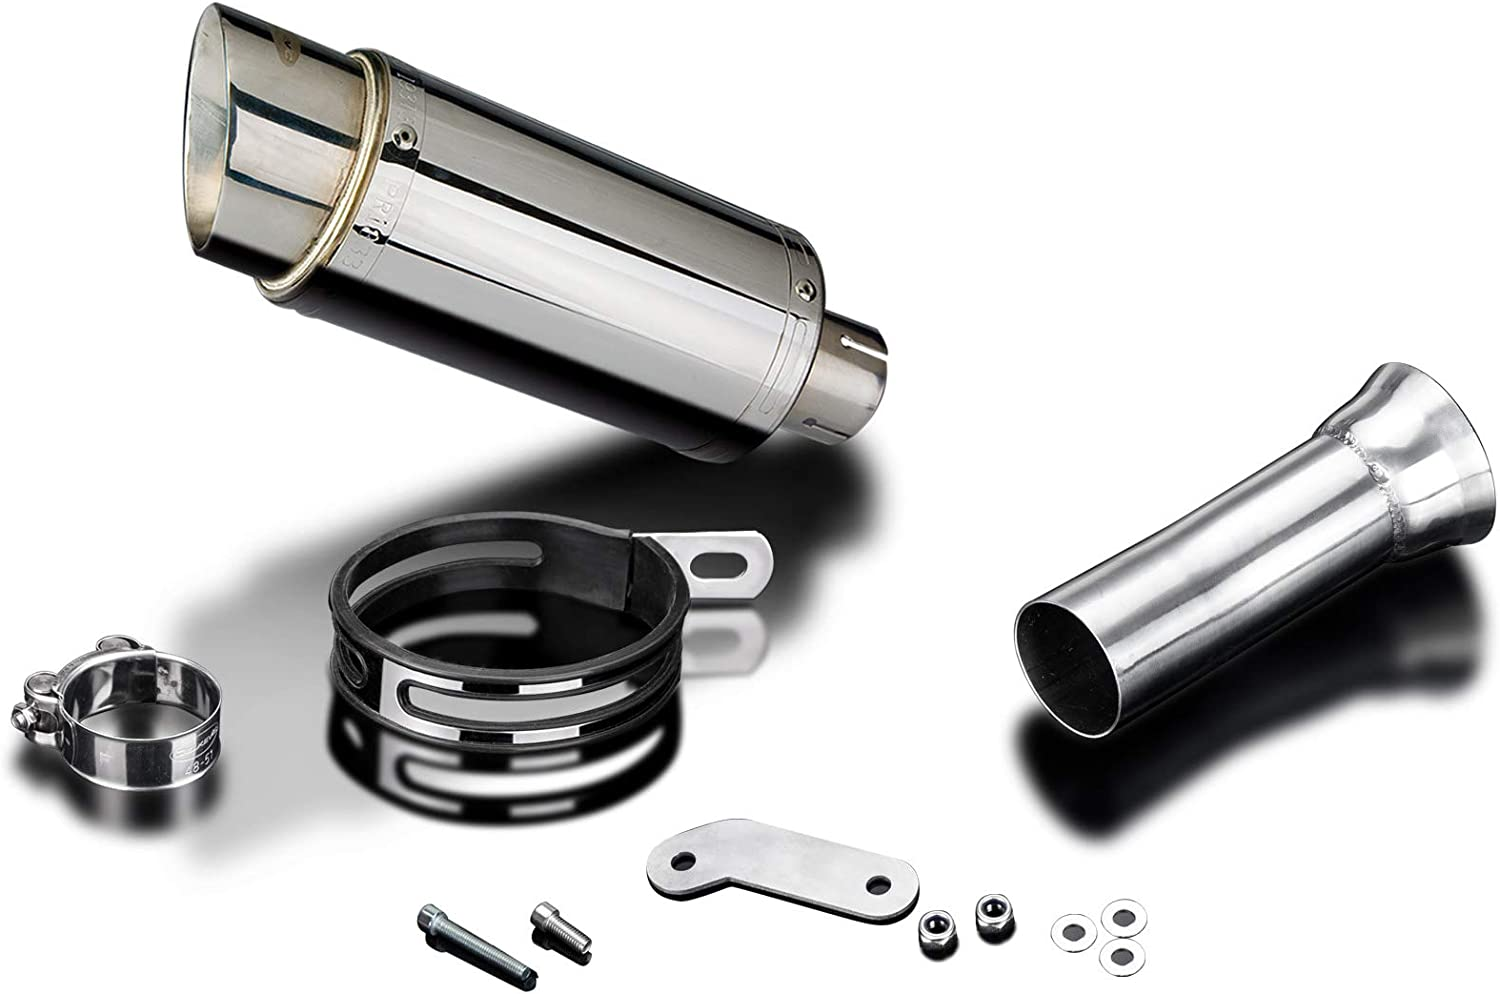 Delkevic Aftermarket Slip On Mini 8 Stainless Steel Round Muffler compatible with KTM 1090 1190 Adventure /& 1290 Super Adventure 2014-2019